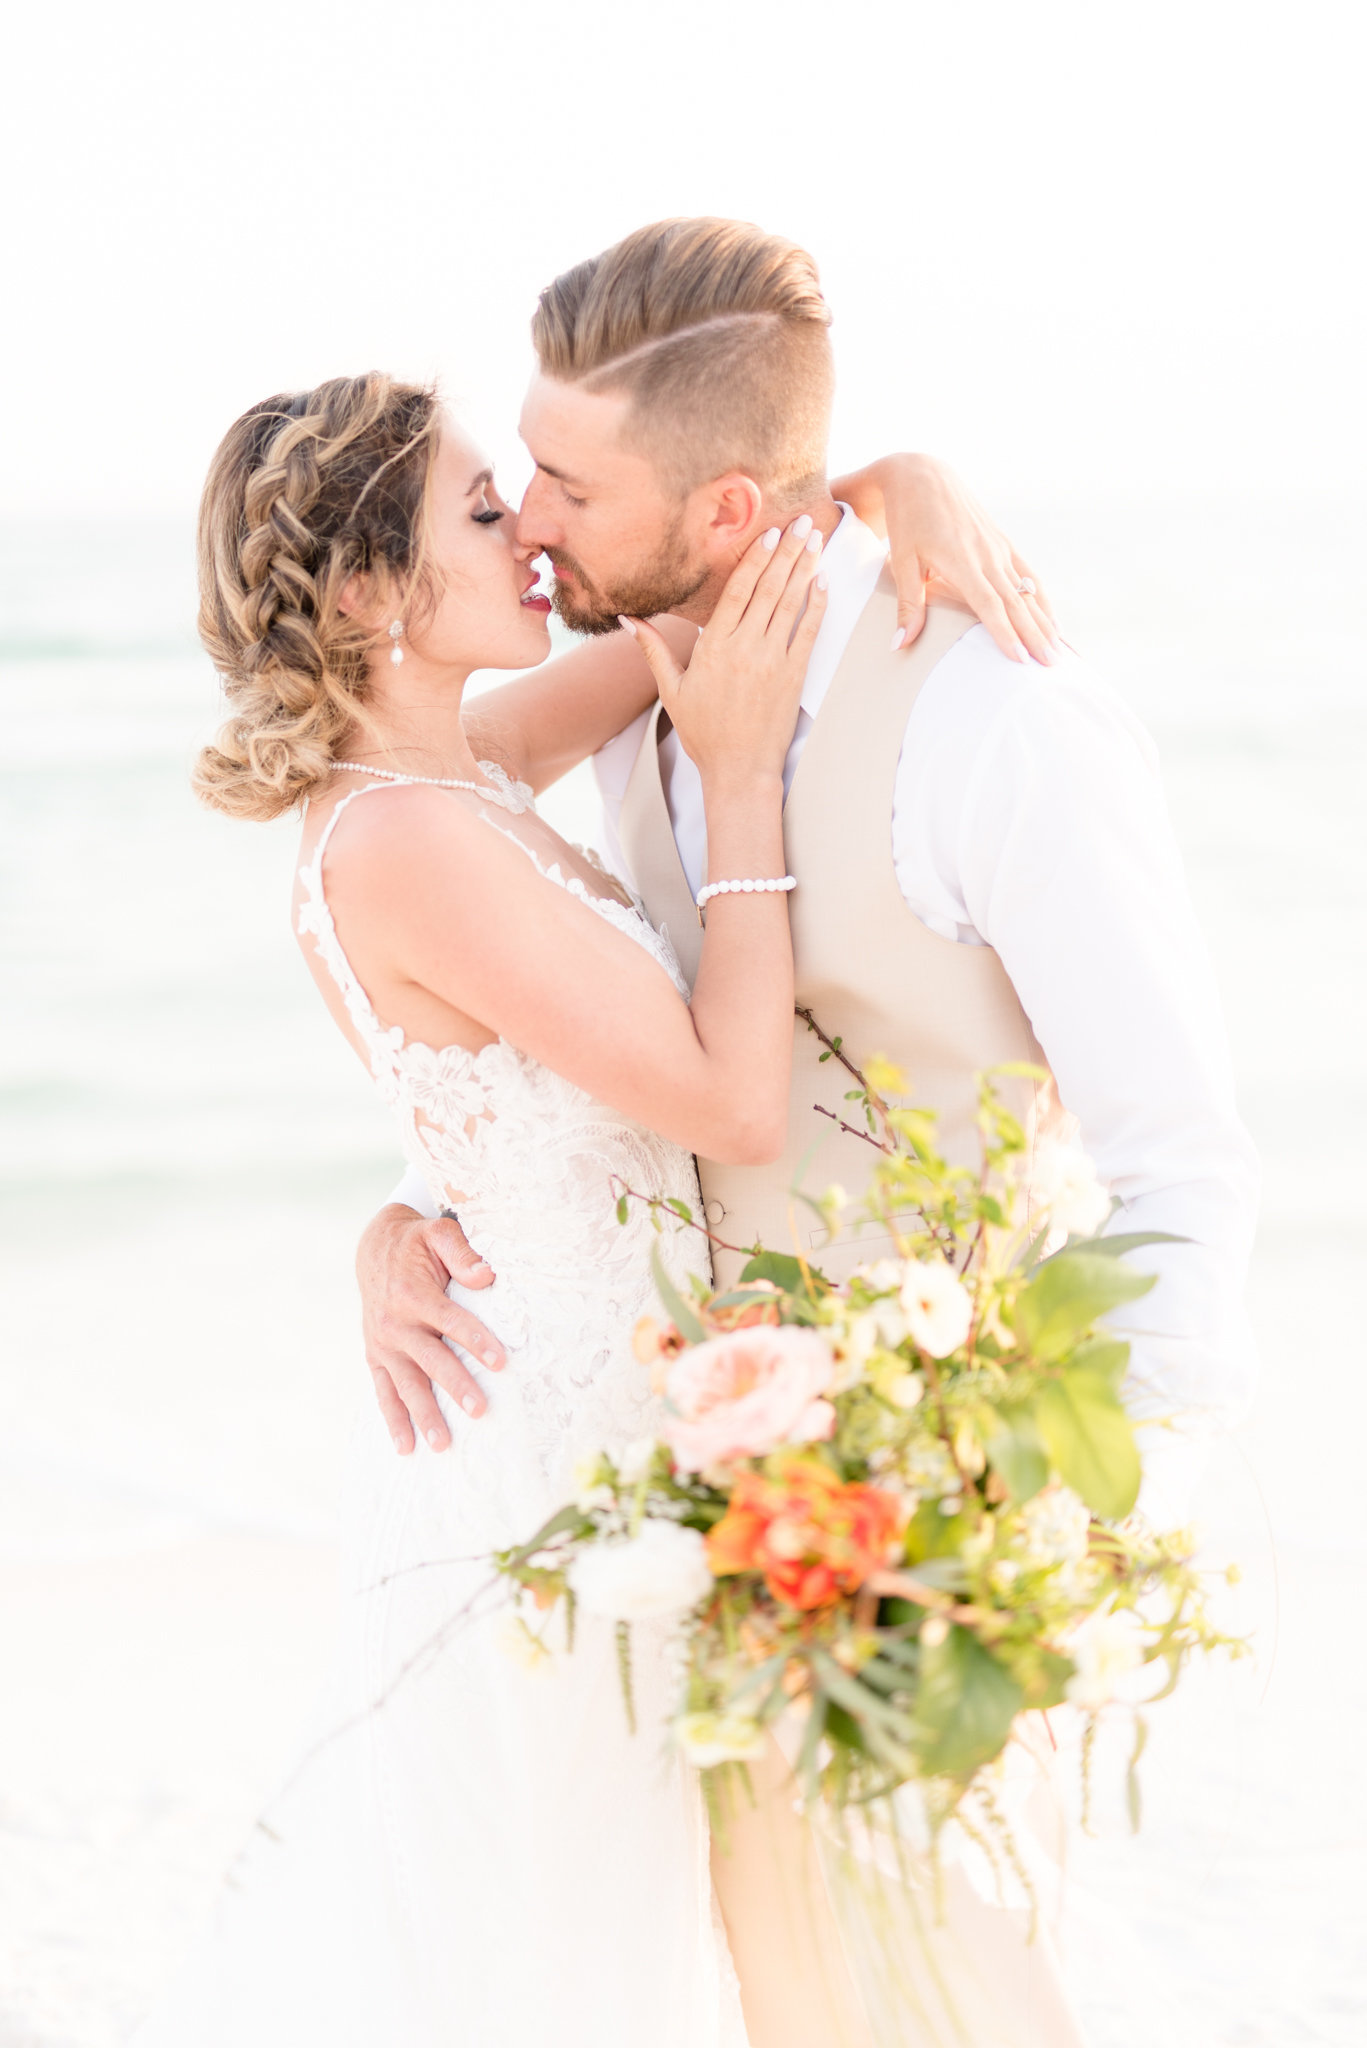 Bride and groom lean in for a kiss on the beach.